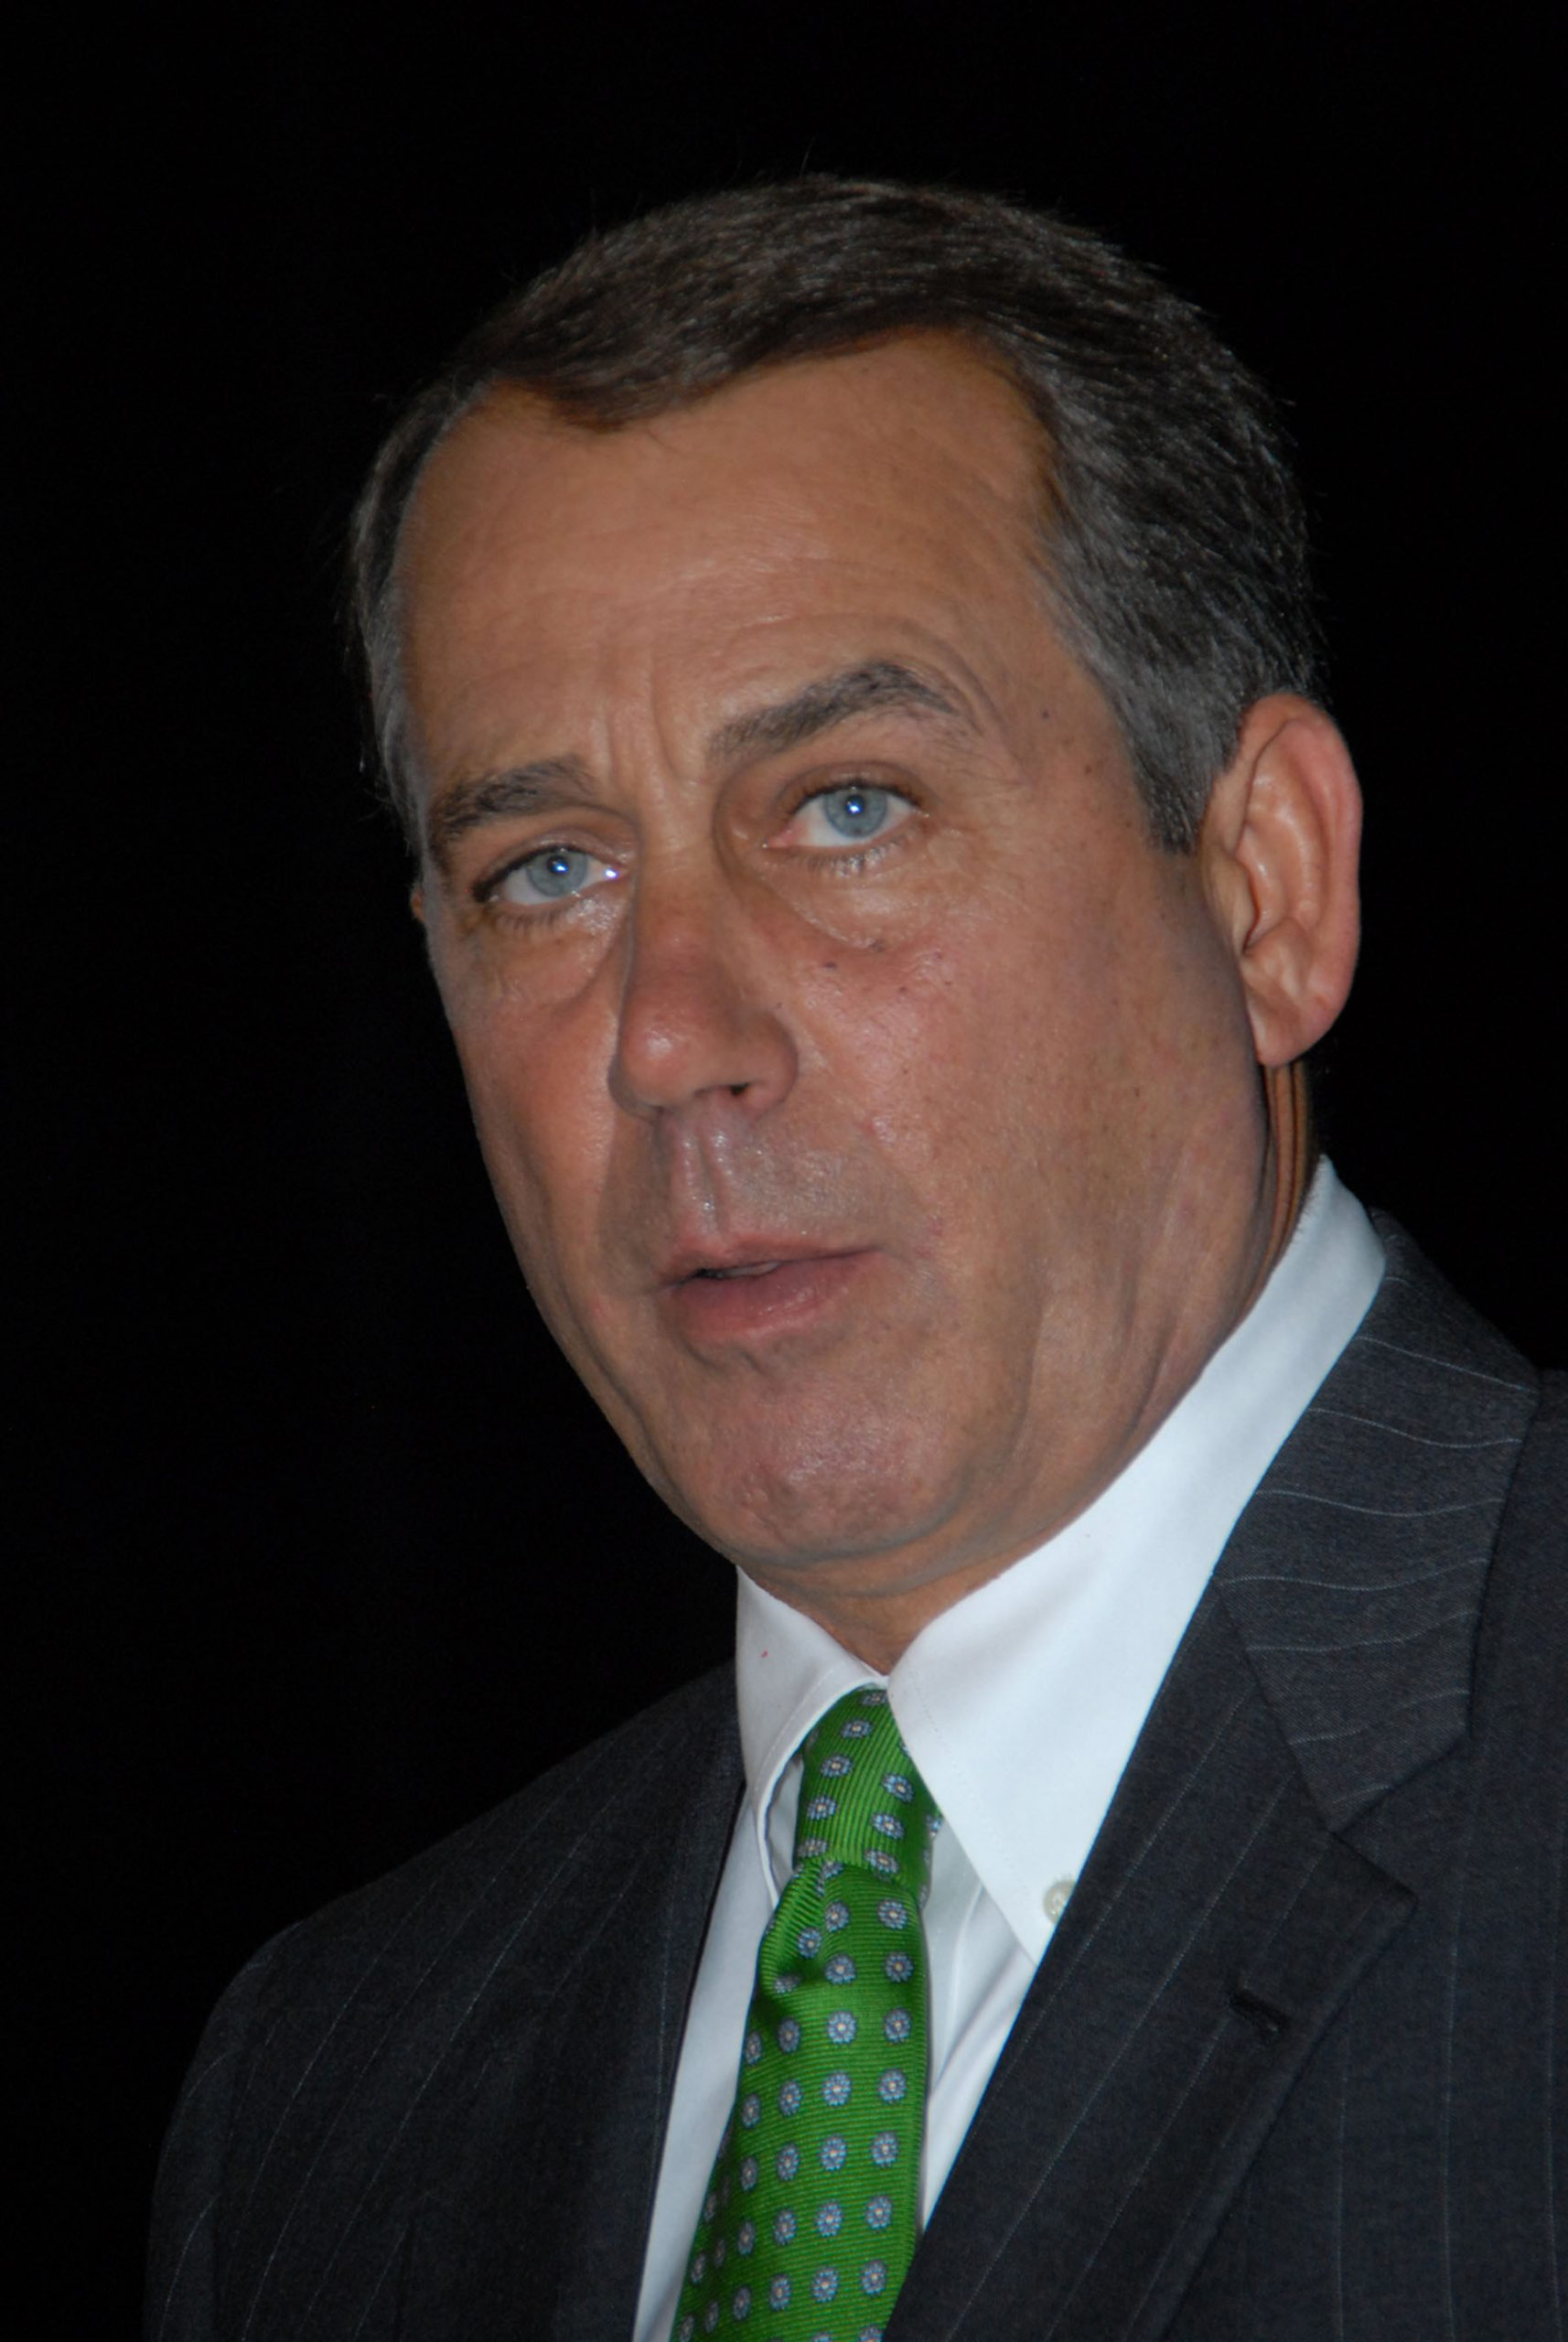 Speaker John Boehner is the face of the Republican Party./Photo Credit: PR Newswire